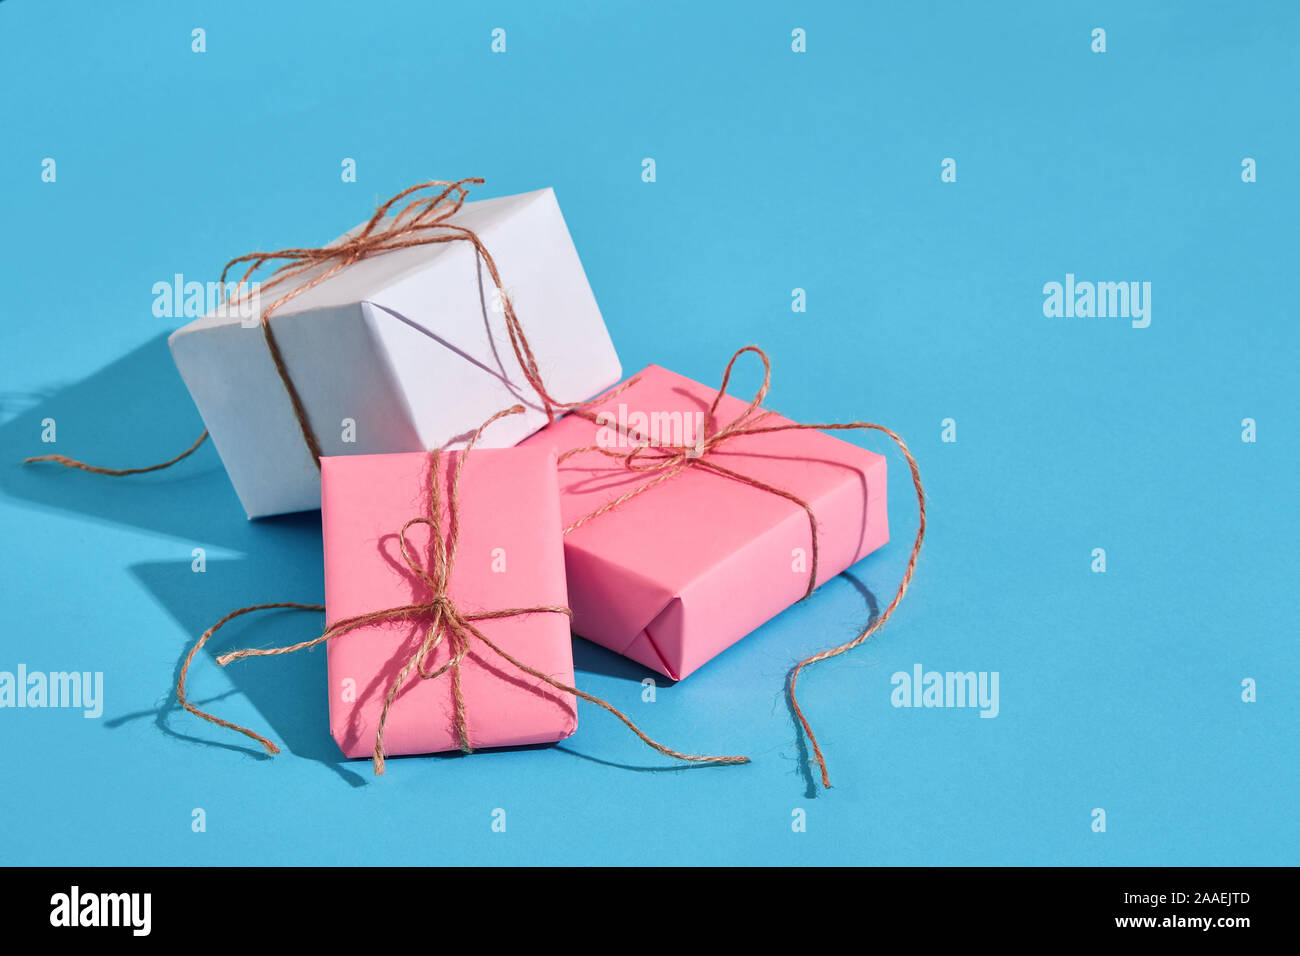 Craft paper wrapped present boxes craft rope bow ribbon with sha Stock Photo